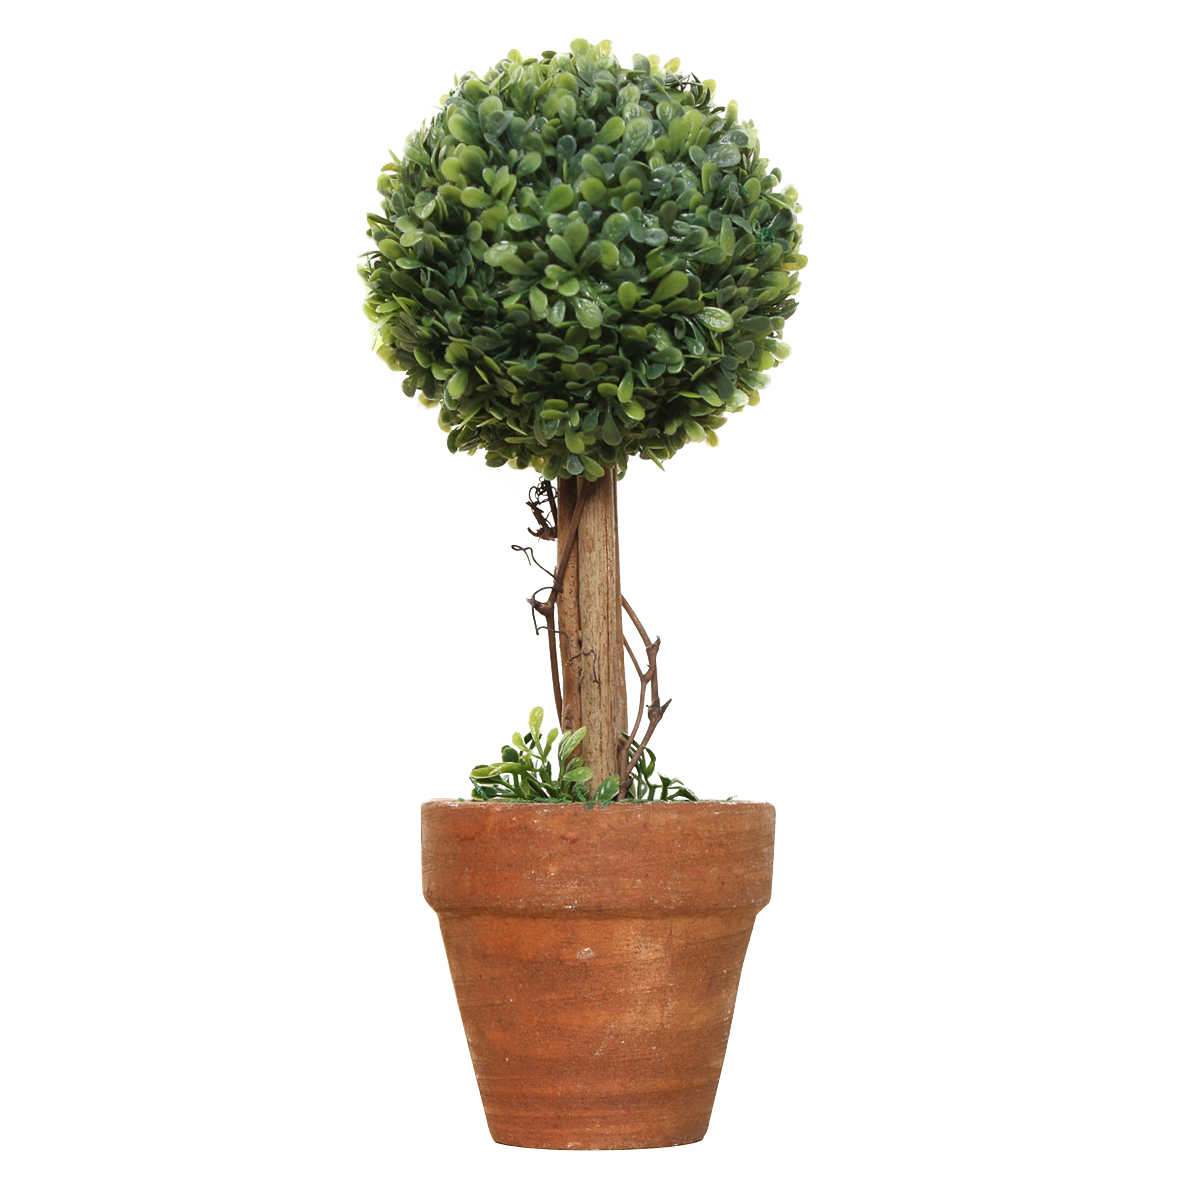 Plastic Garden Grass Ball Topiary Tree Pot Dried Green Plant for ...